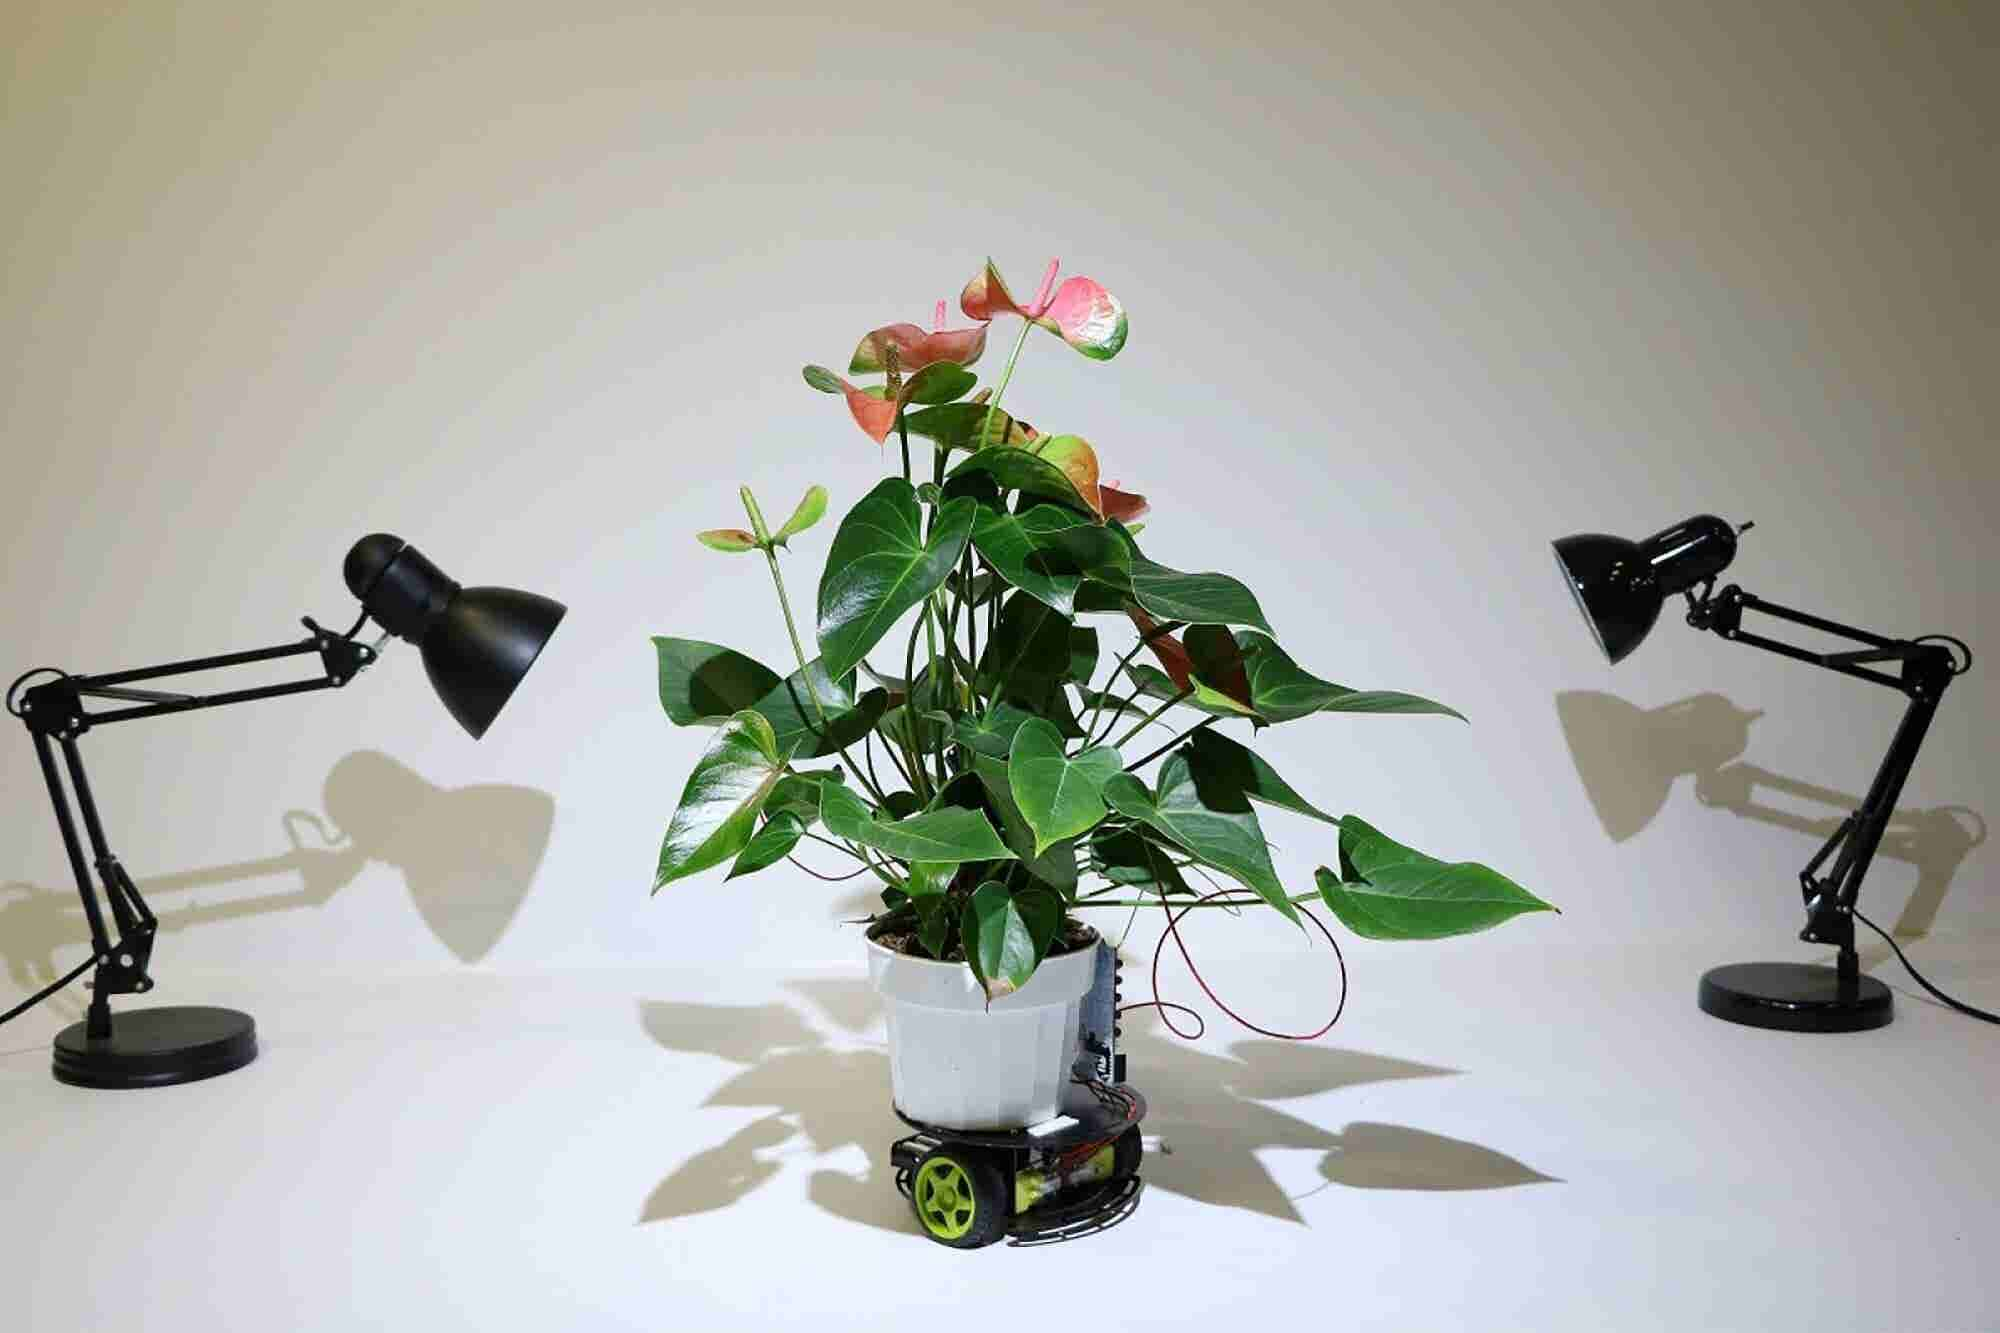 MIT Researchers Create a Robot Houseplant That Moves on Its Own